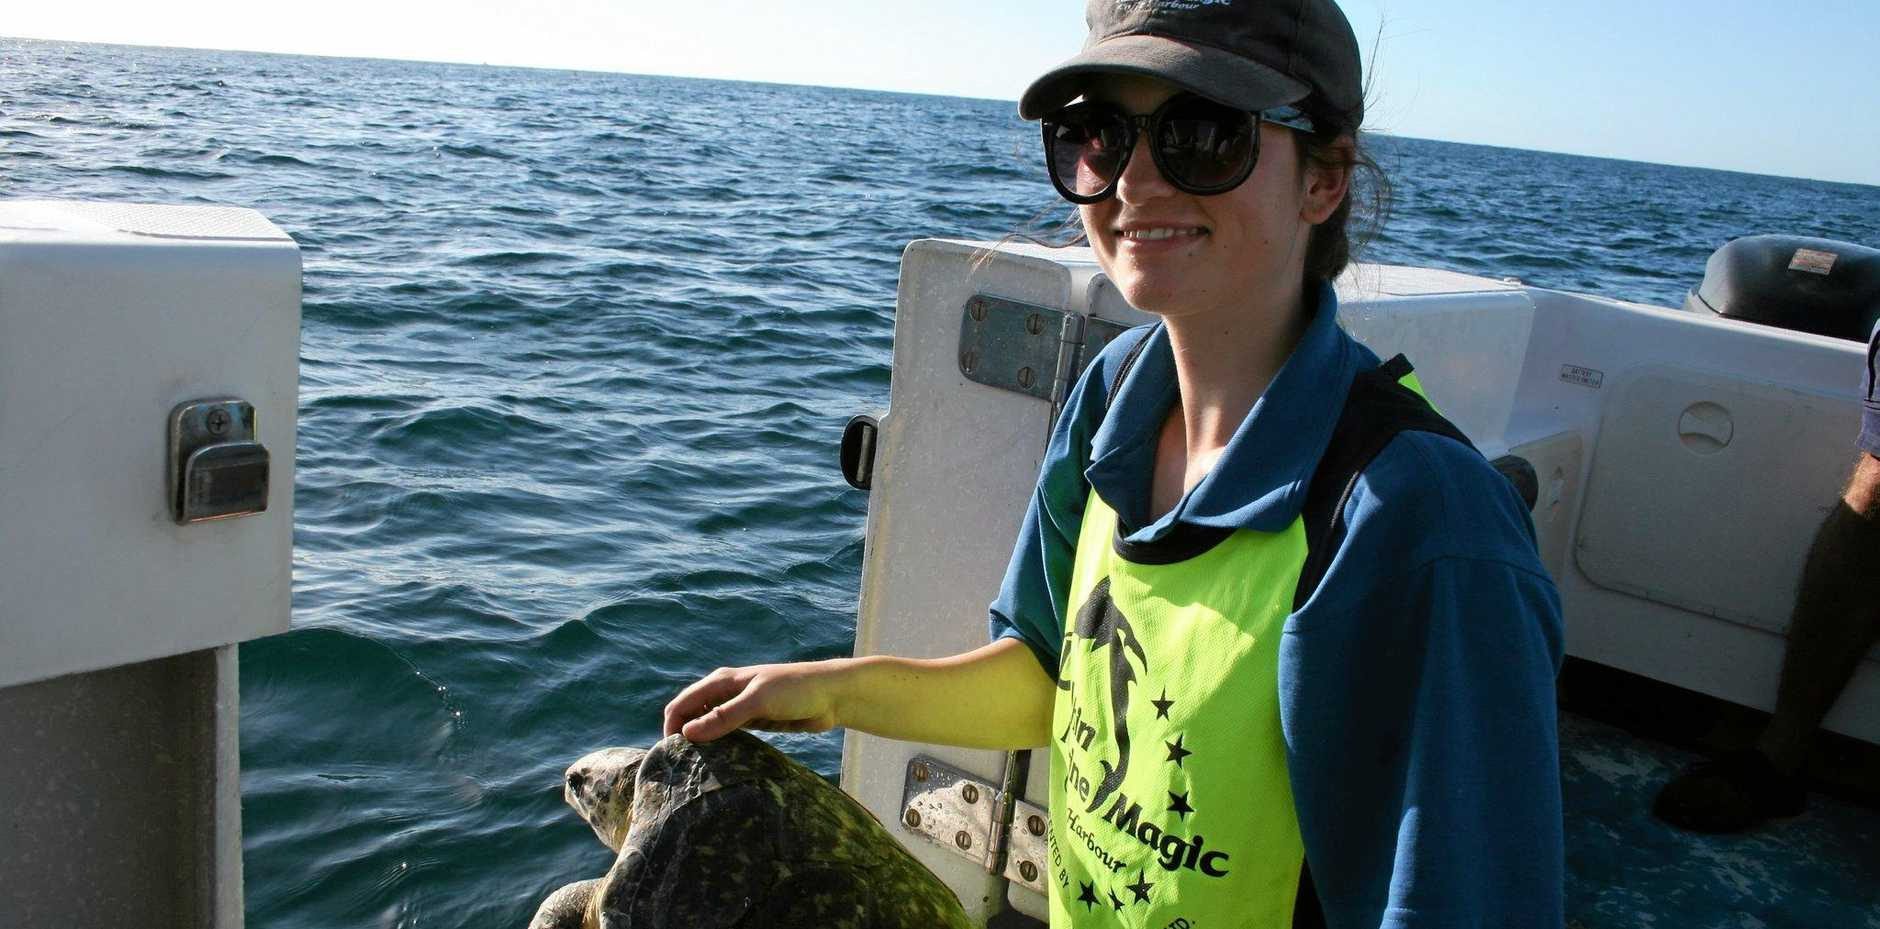 GOING HOME: Merri Pedler, a Bachelor of Science student from Flinders University in Adelaide, gives a marine turtle a new chance at life after rehabilitation.